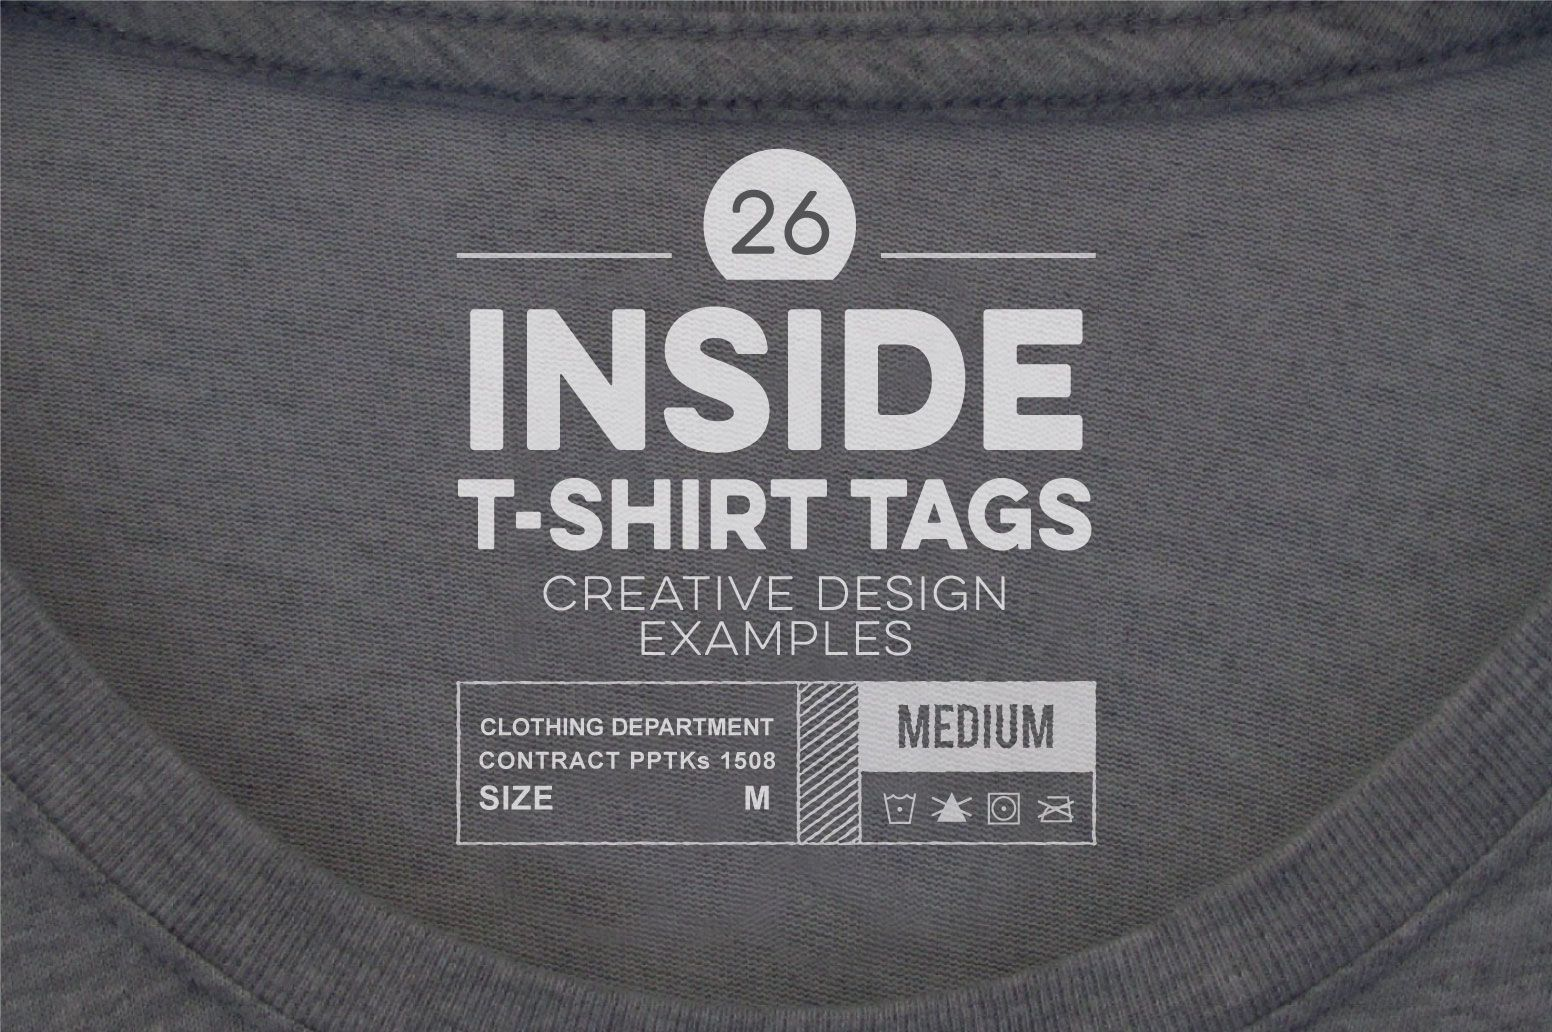 005 Unforgettable T Shirt Tag Template Highest Clarity  Neck LabelFull